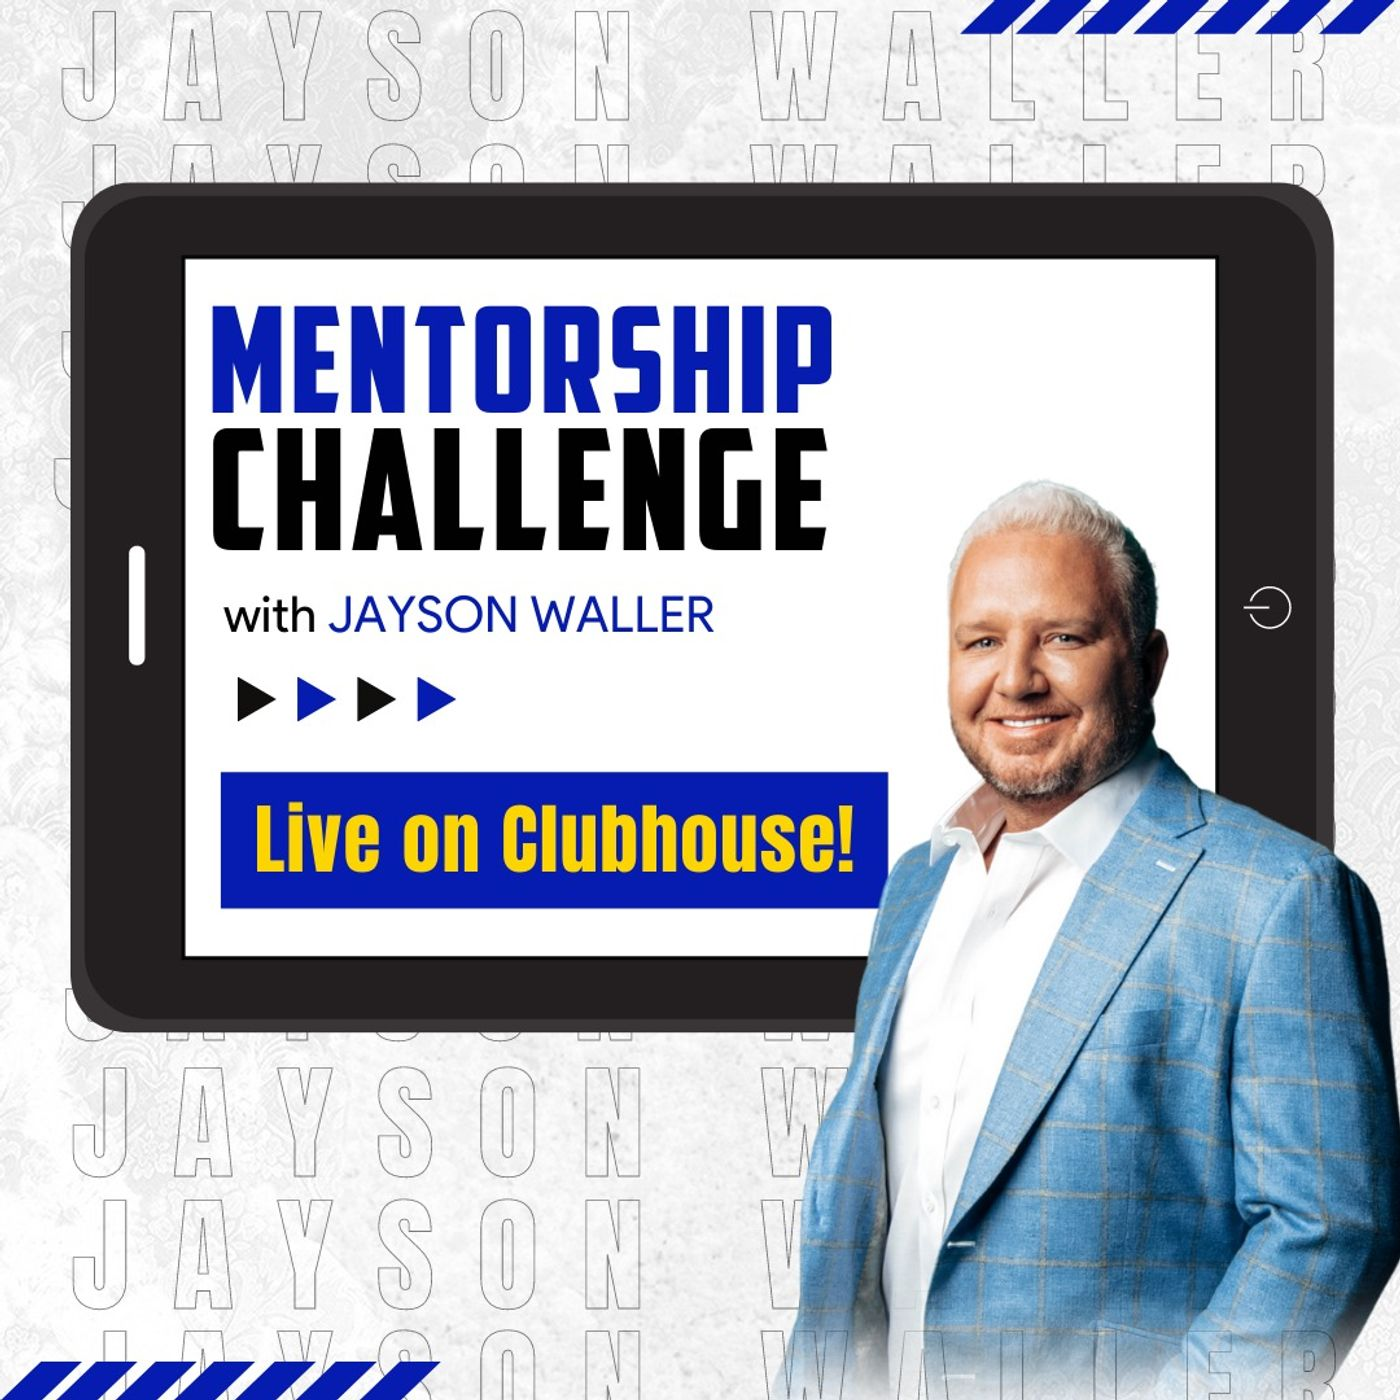 #TULive: Mentorship Challenge on Clubhouse